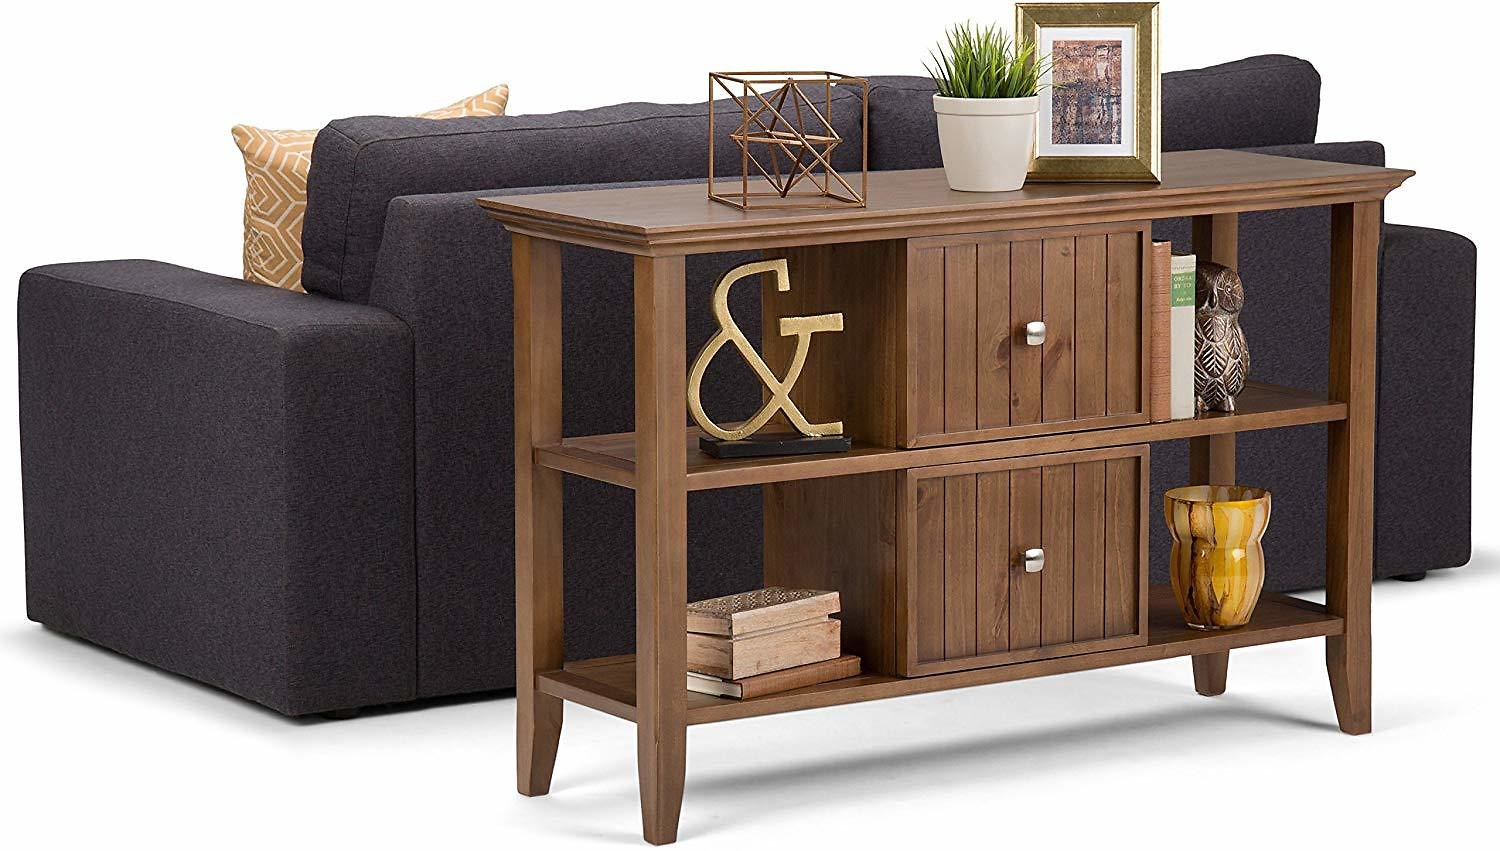 Simpli Home Acadian Solid Wood 48 In. Wide Rustic Console Sofa Table in Medium Saddle Brown